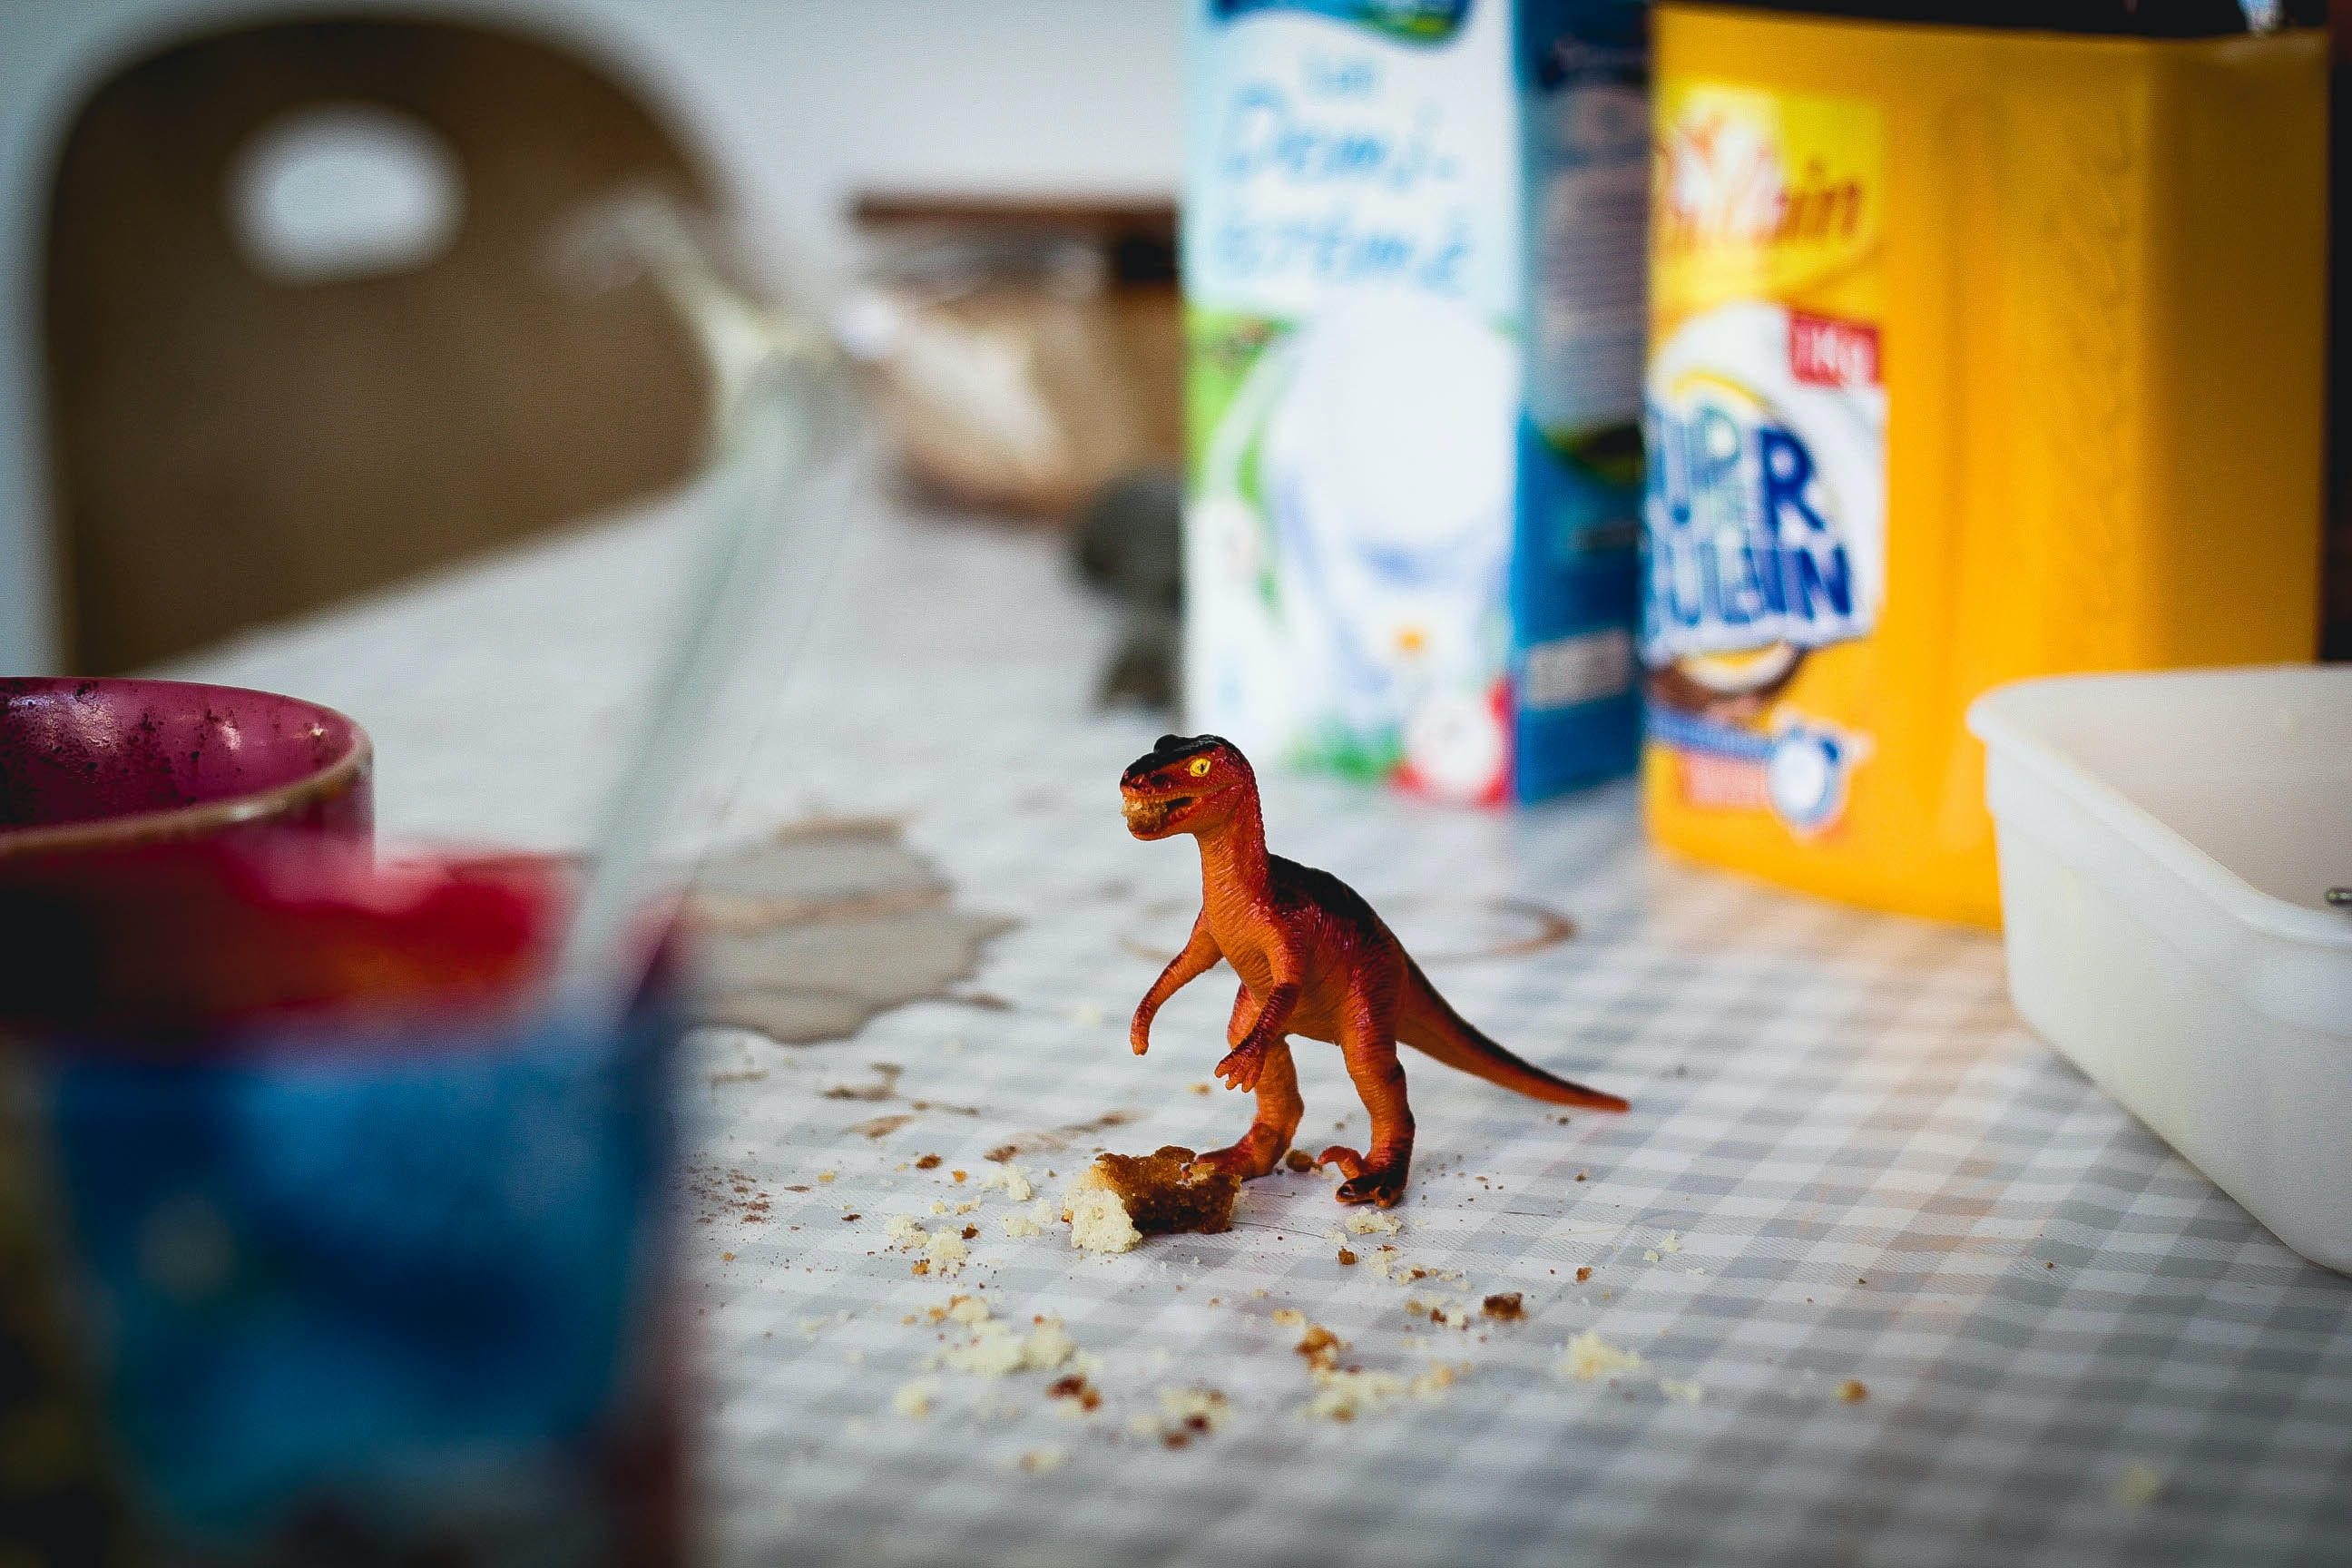 A little toy dinosaur on the kitchen table.